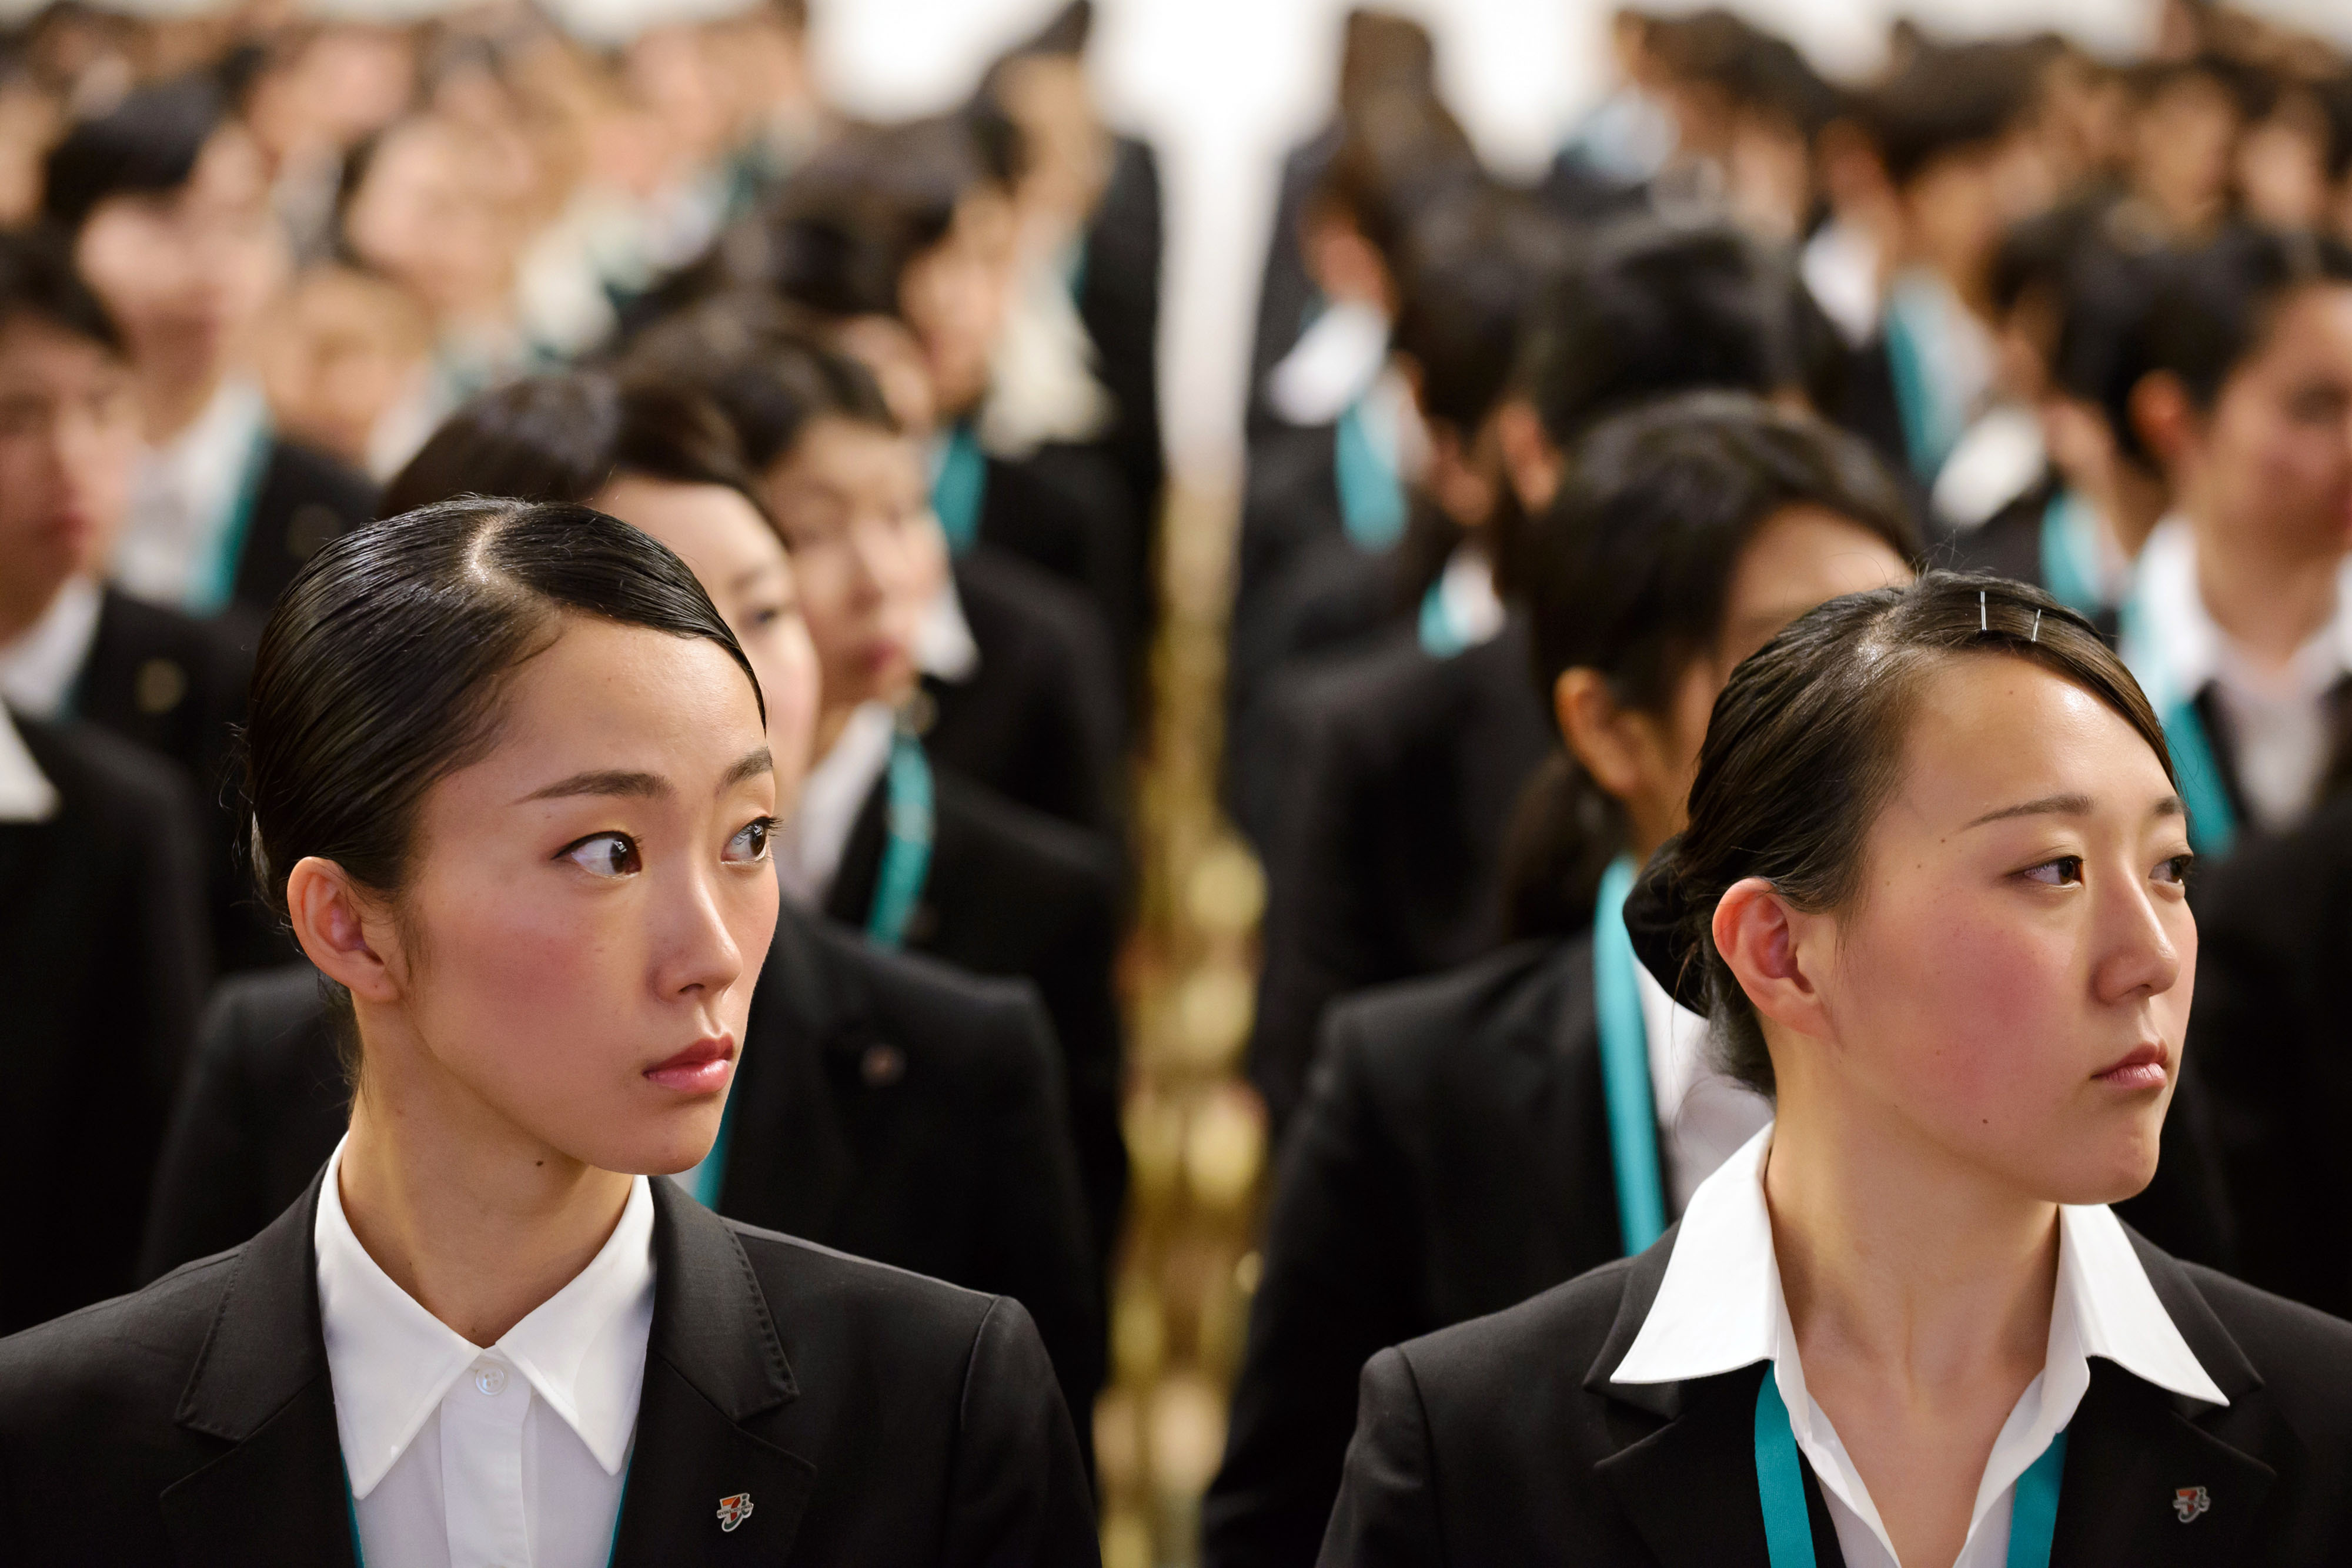 Not a chapatsu in the place: New recruits for Seven & I Holdings Co. attend an initiation ceremony in Tokyo, with nary a lighter-hued hair in sight. April marks the start of many young people's working lives in Japan. | AKIO KON / BLOOMBERG